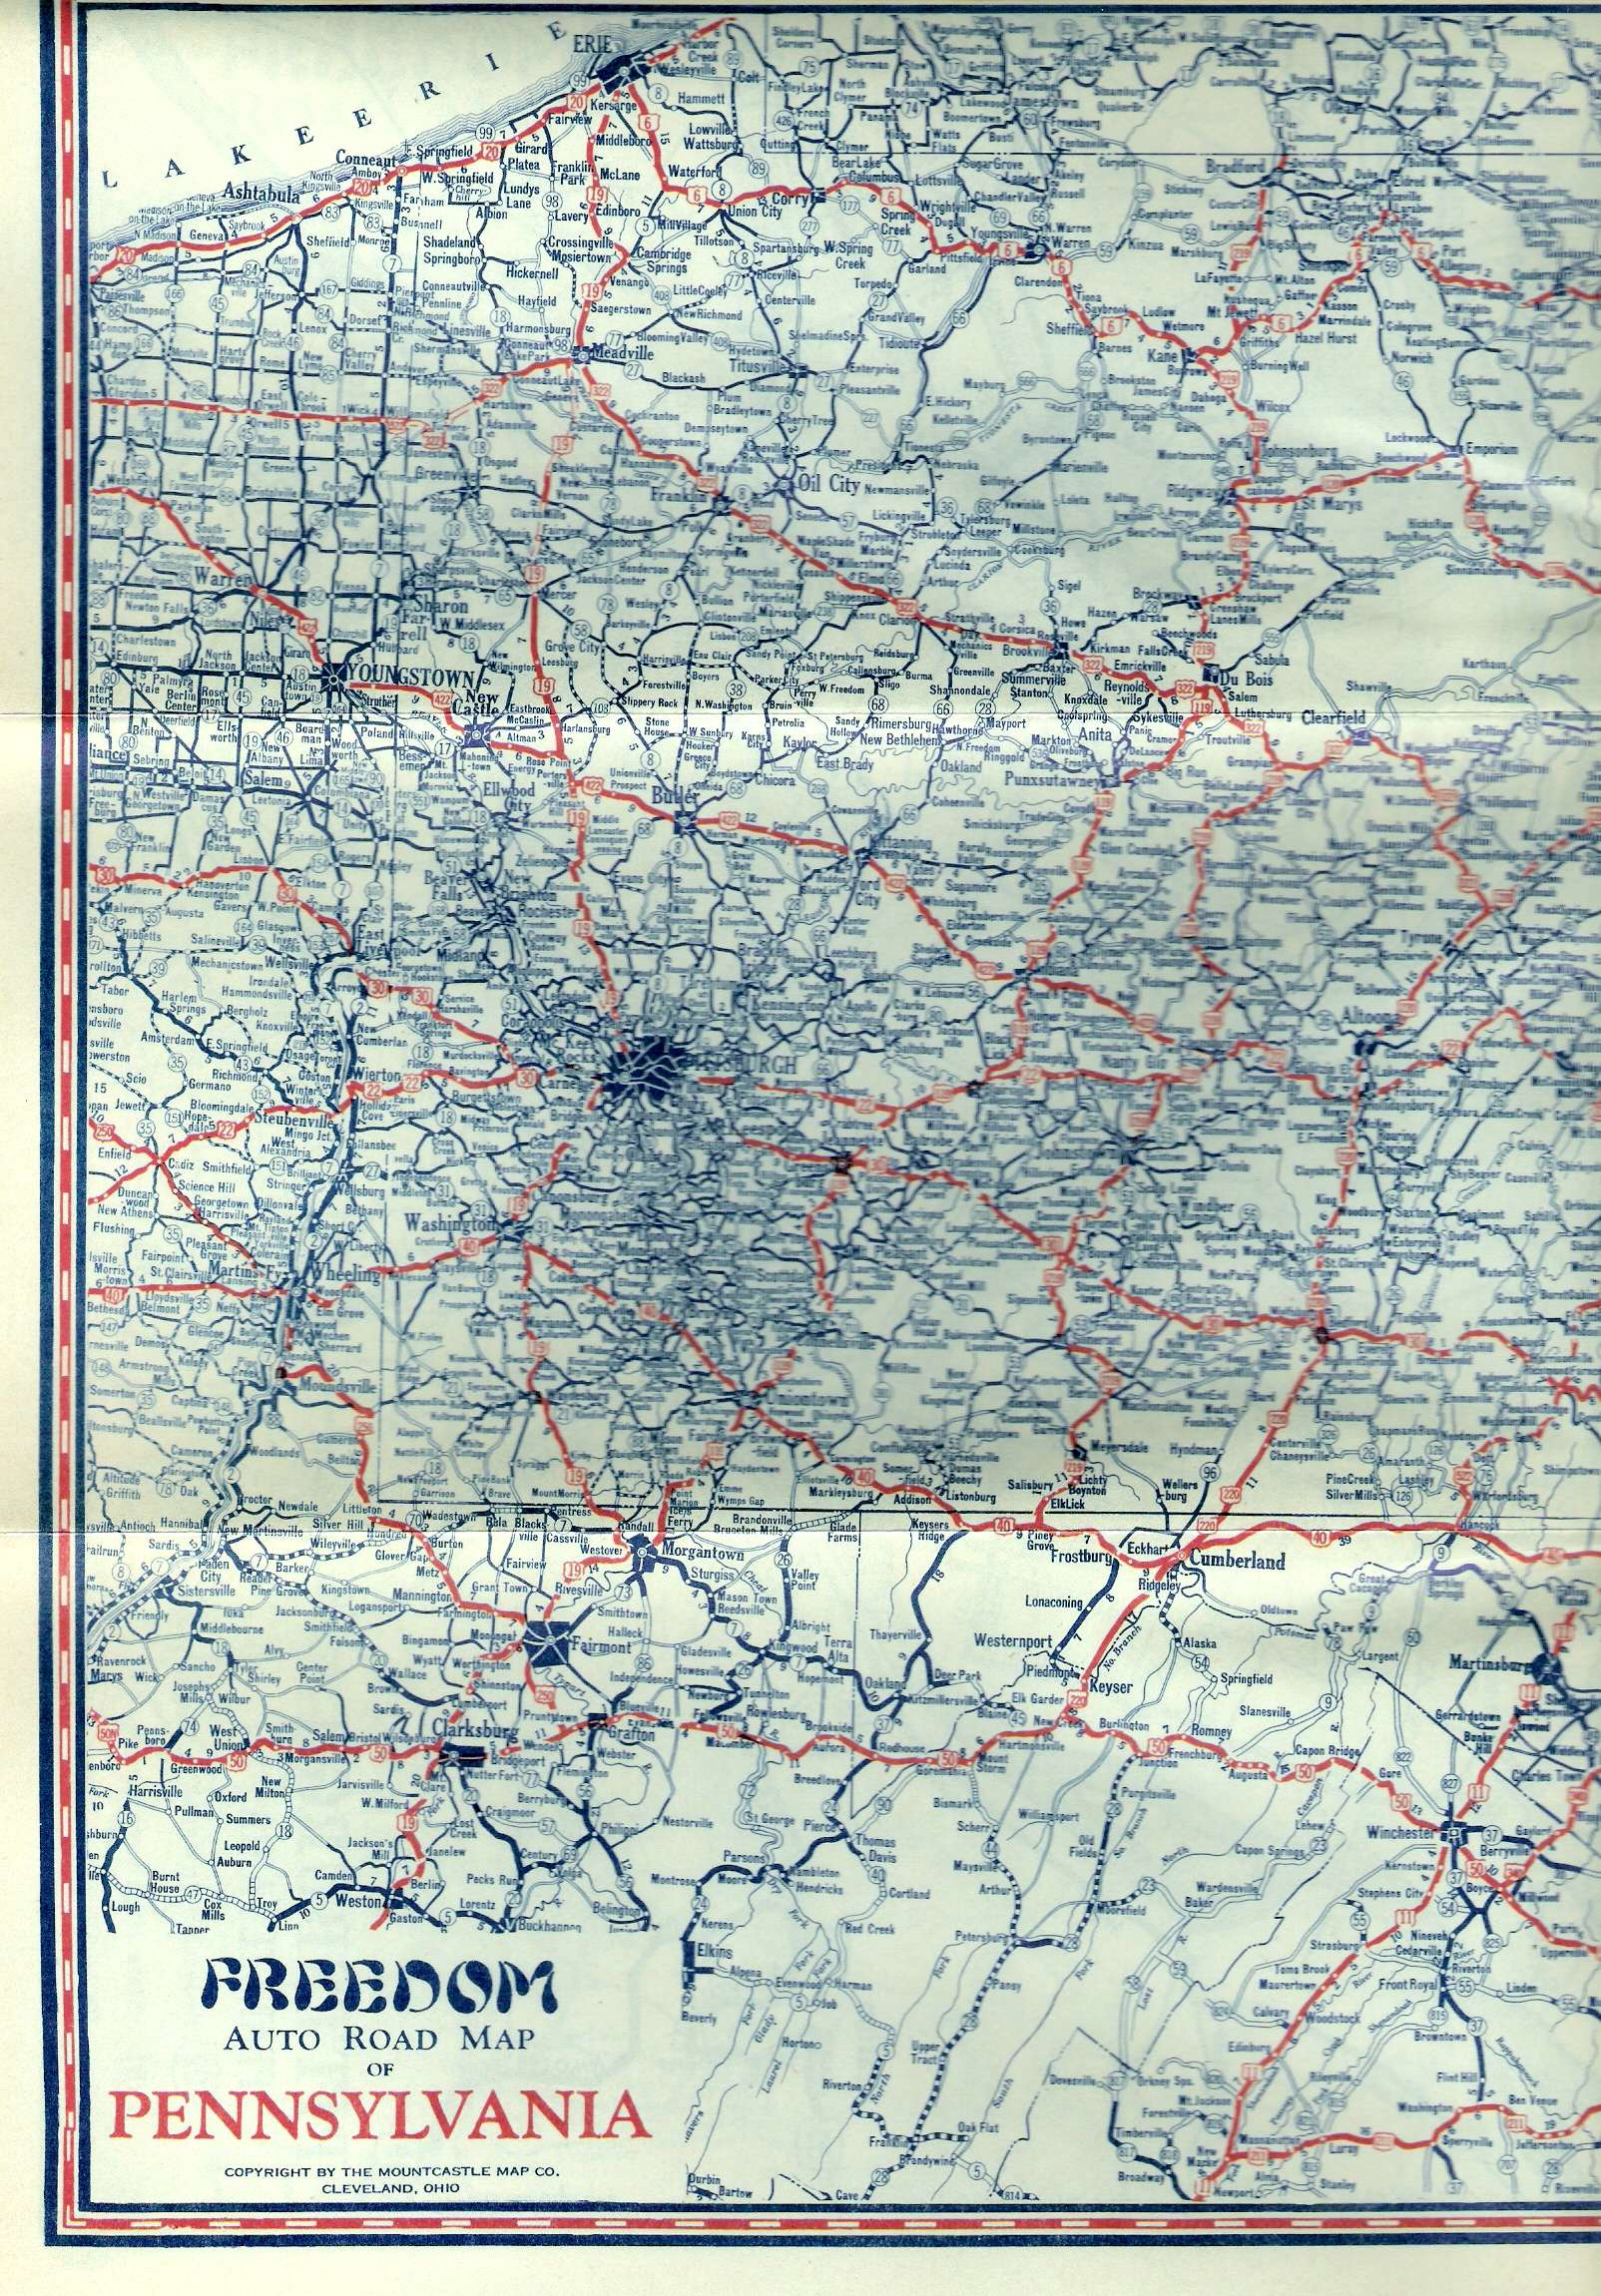 S Oil Company Road Maps Of Pennsylvania - Ohio roadmap